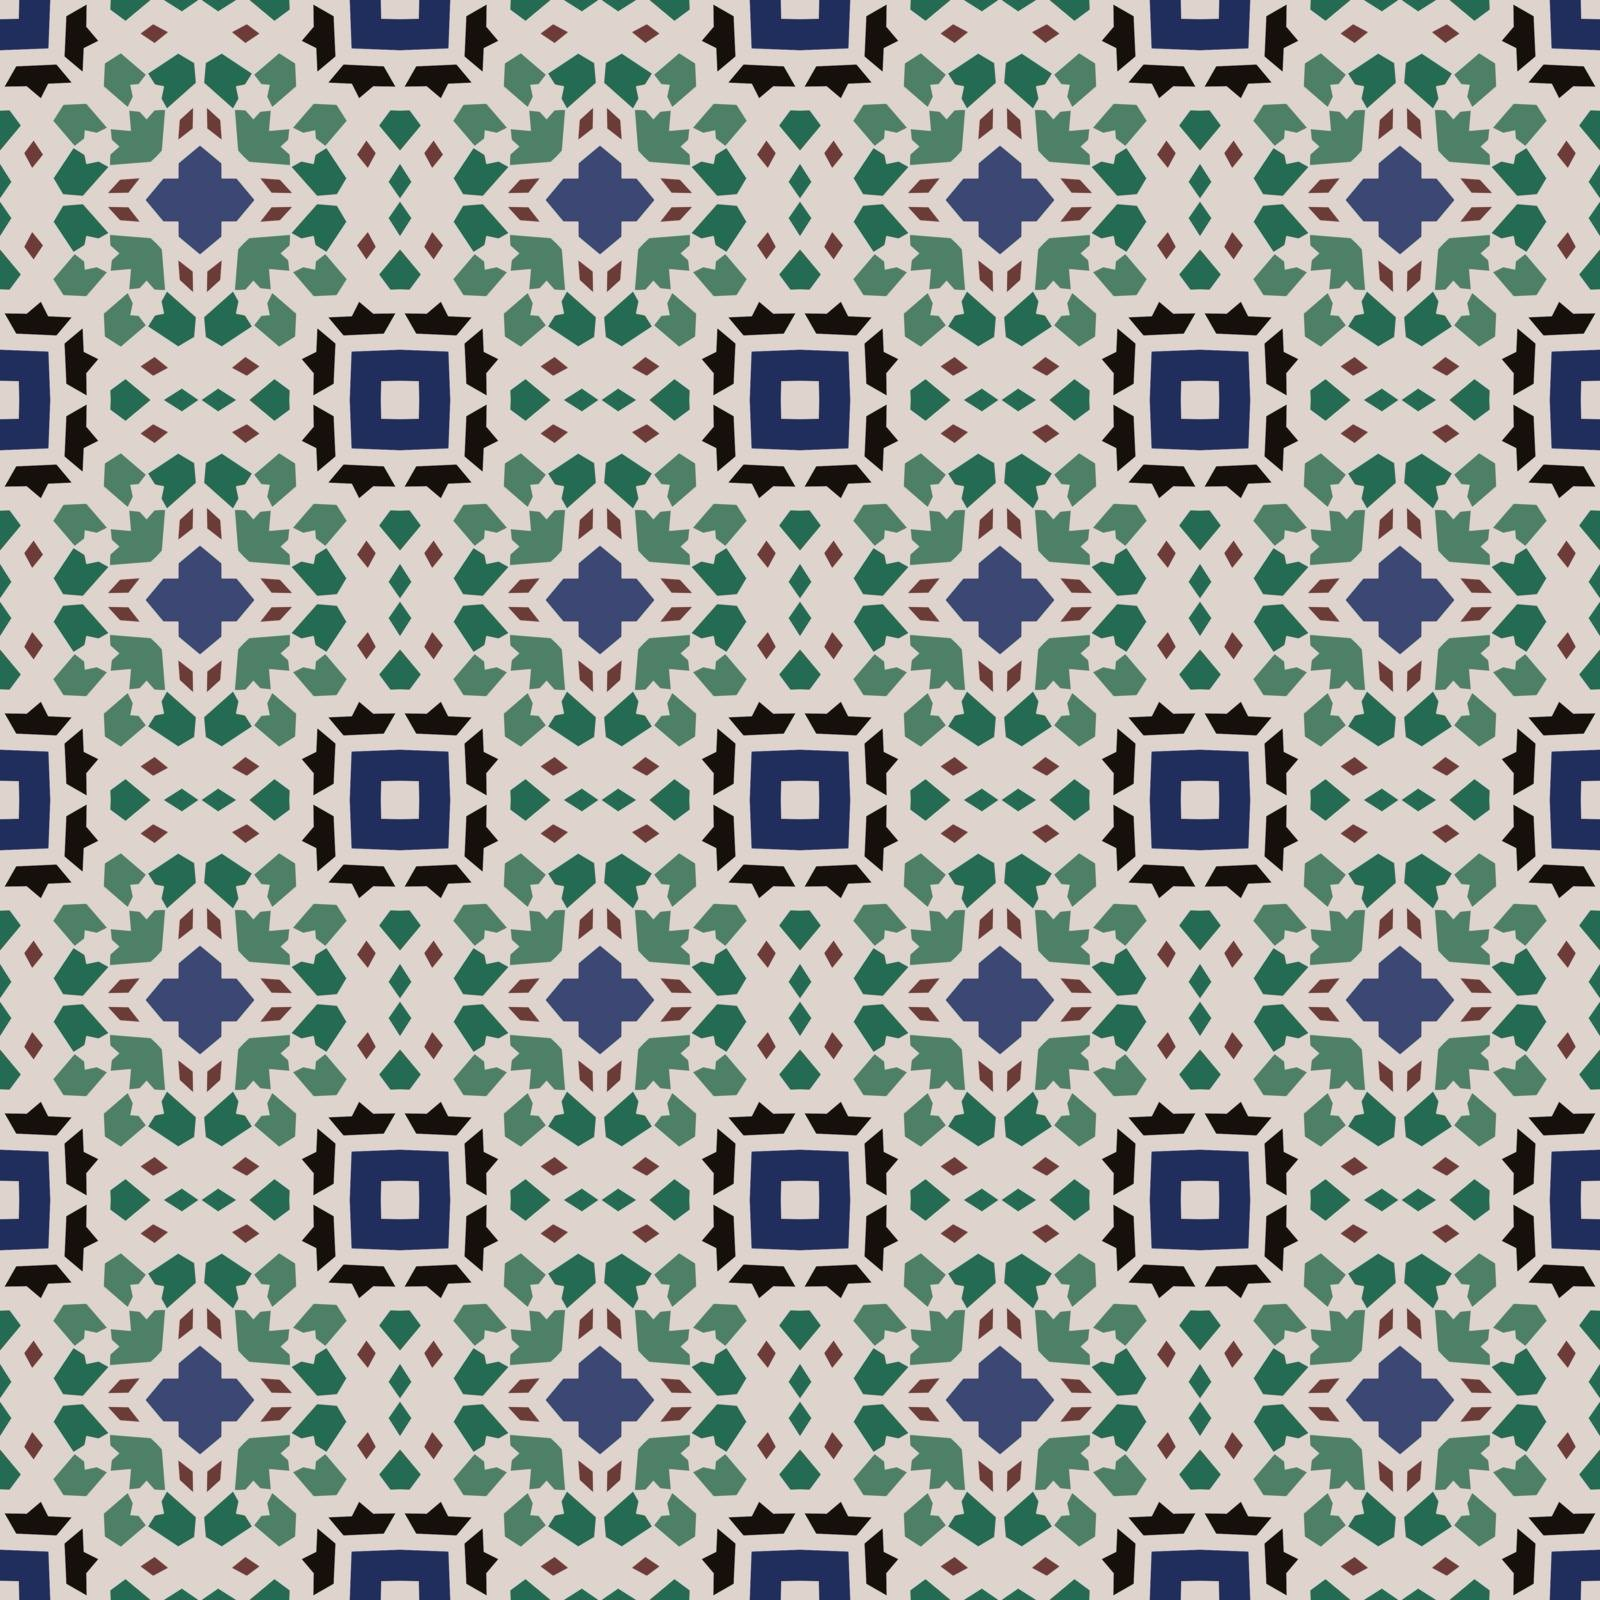 Seamless illustrated pattern made of abstract elements in beige, blue, green,black and brown